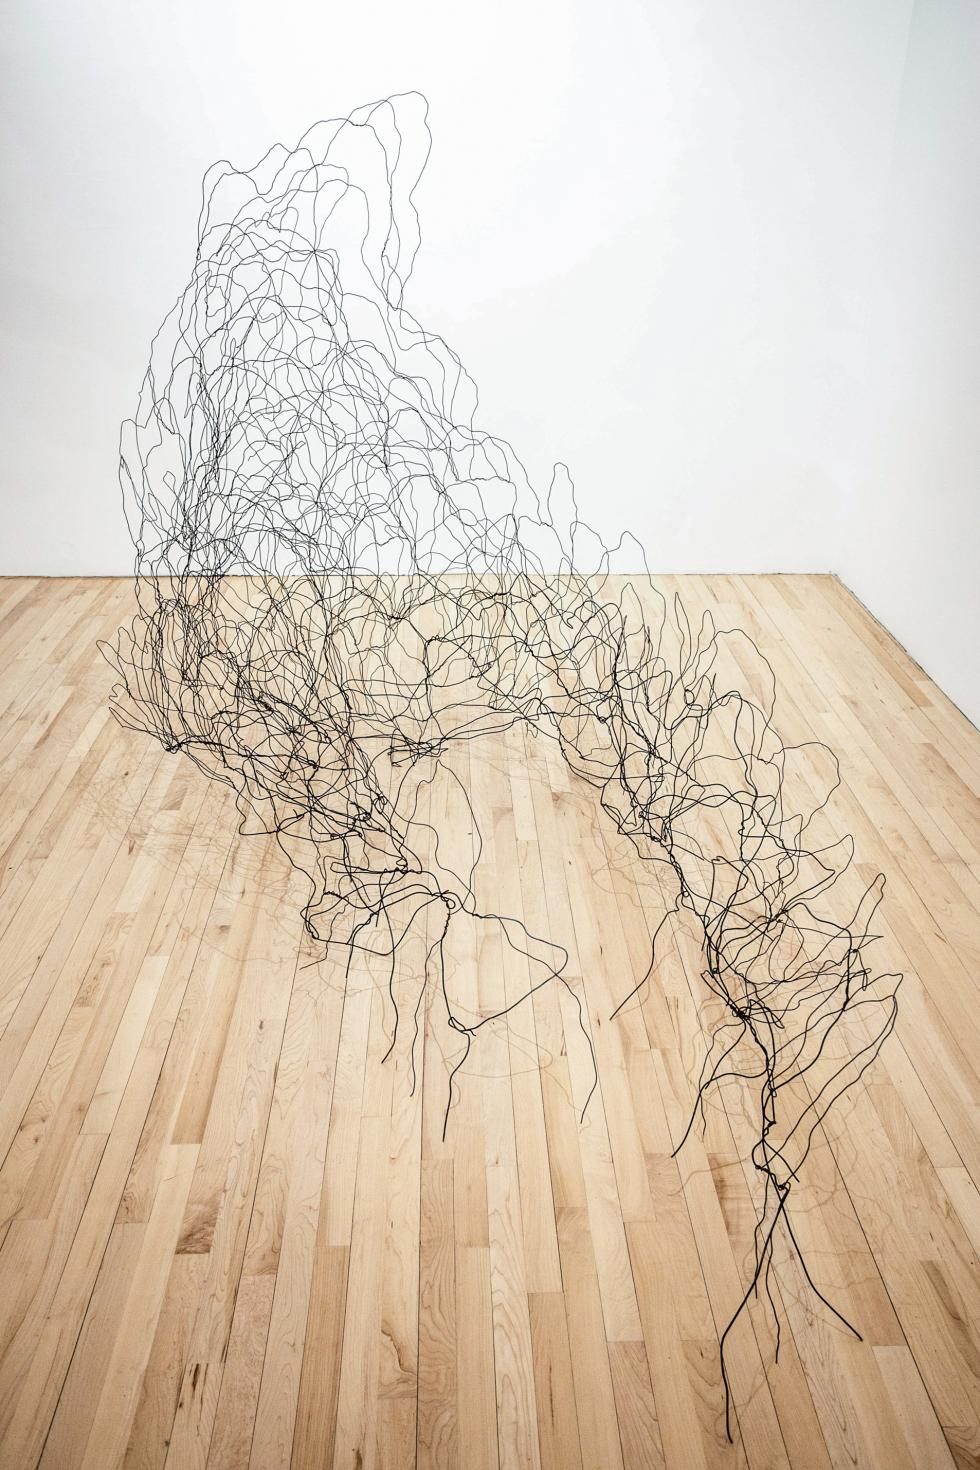 Large black wire sculpture in a loose hill pattern set against a white wall and light colored wooden floor.